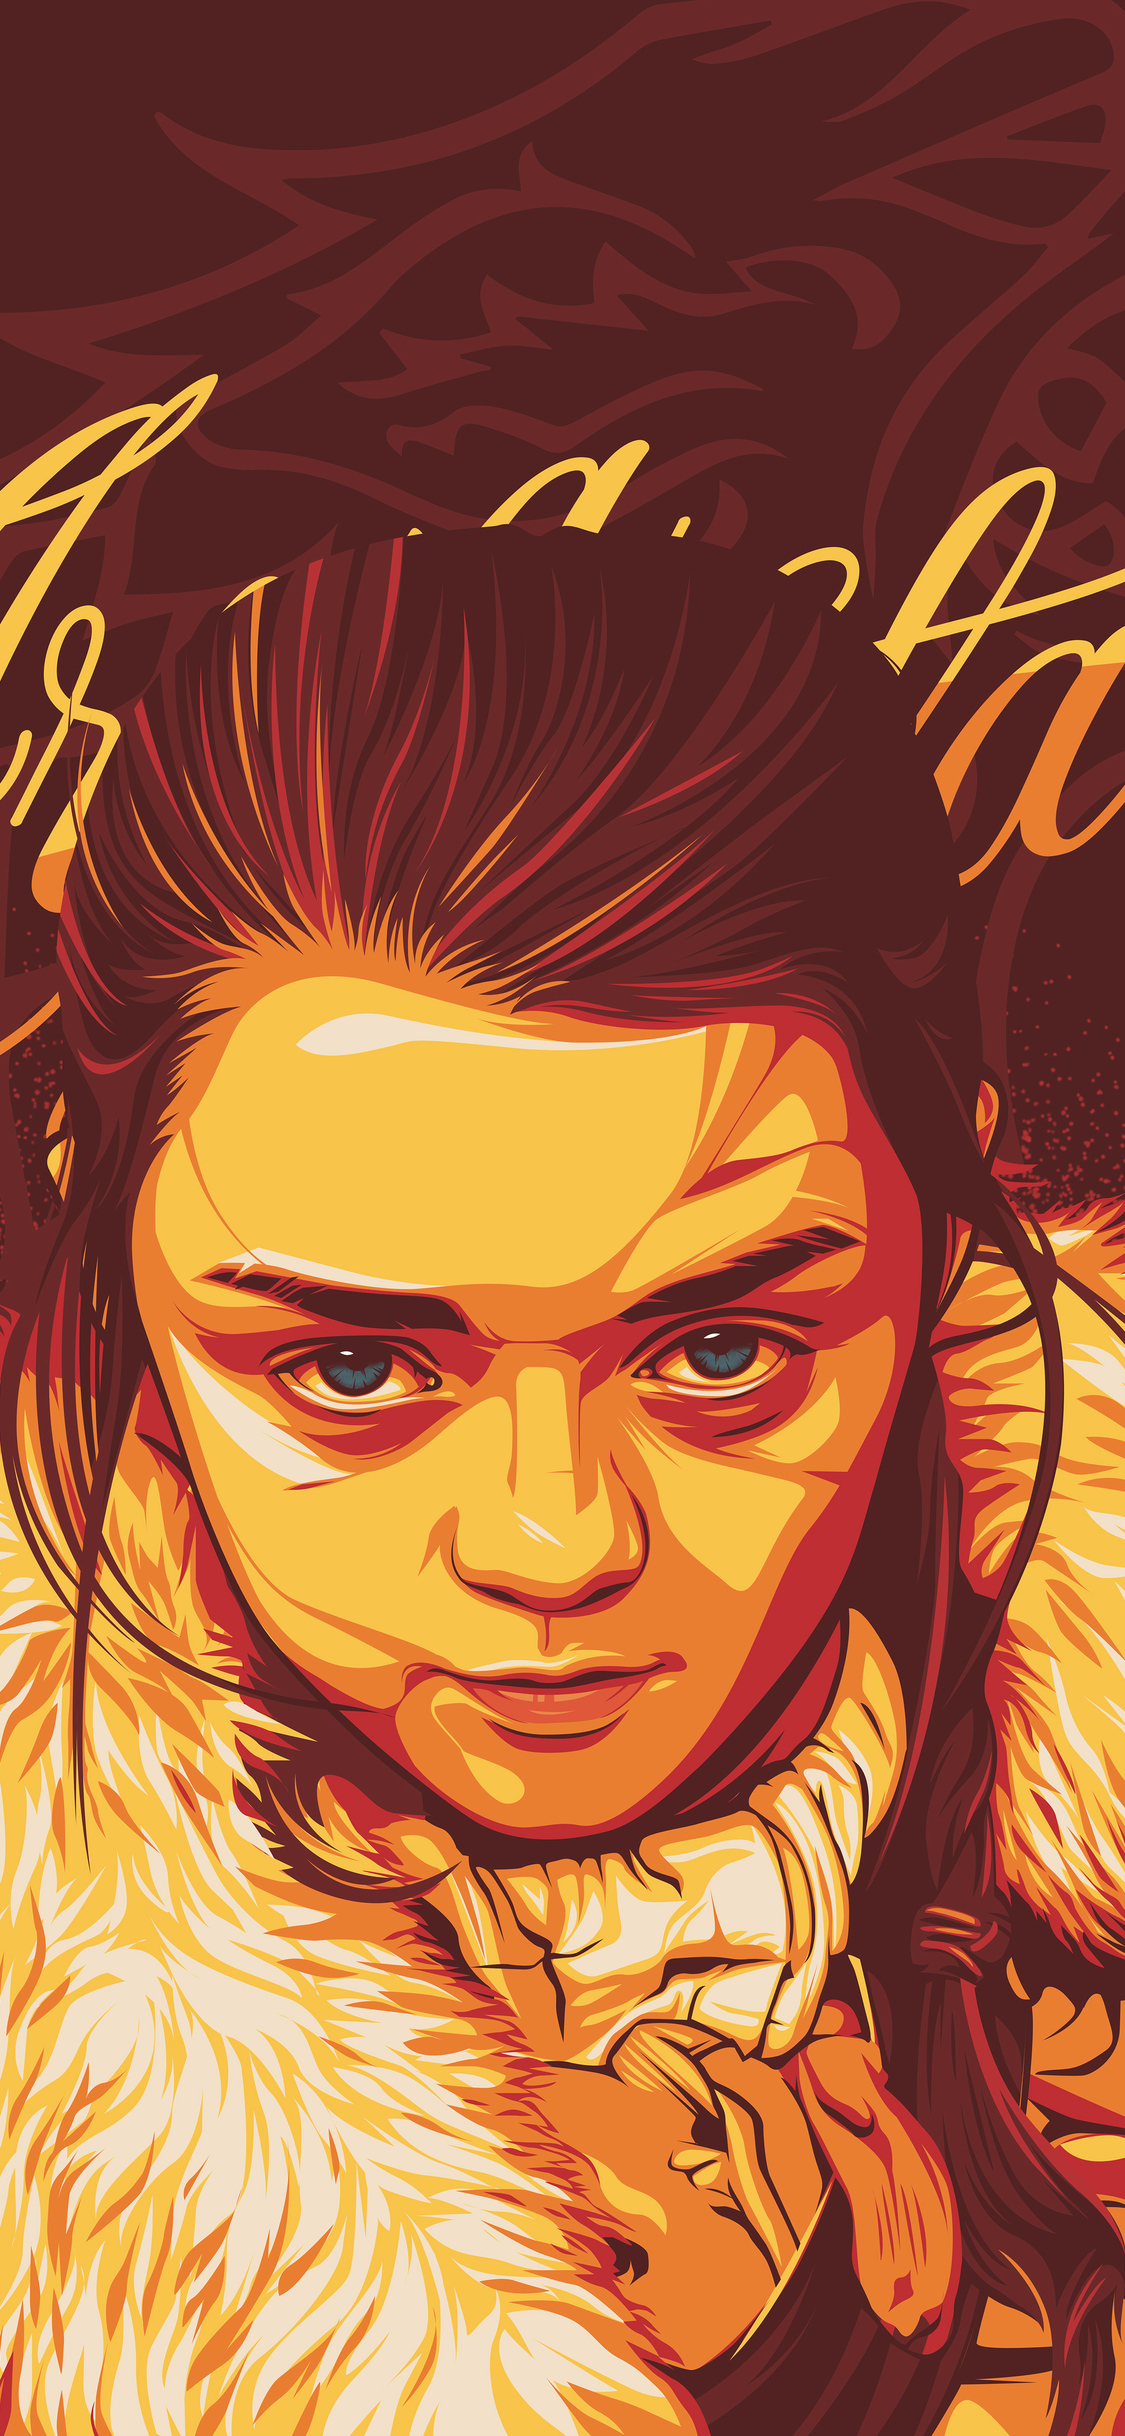 arya-stark-digital-art-z7-1125x2436 iPhone game of thrones wallpaper